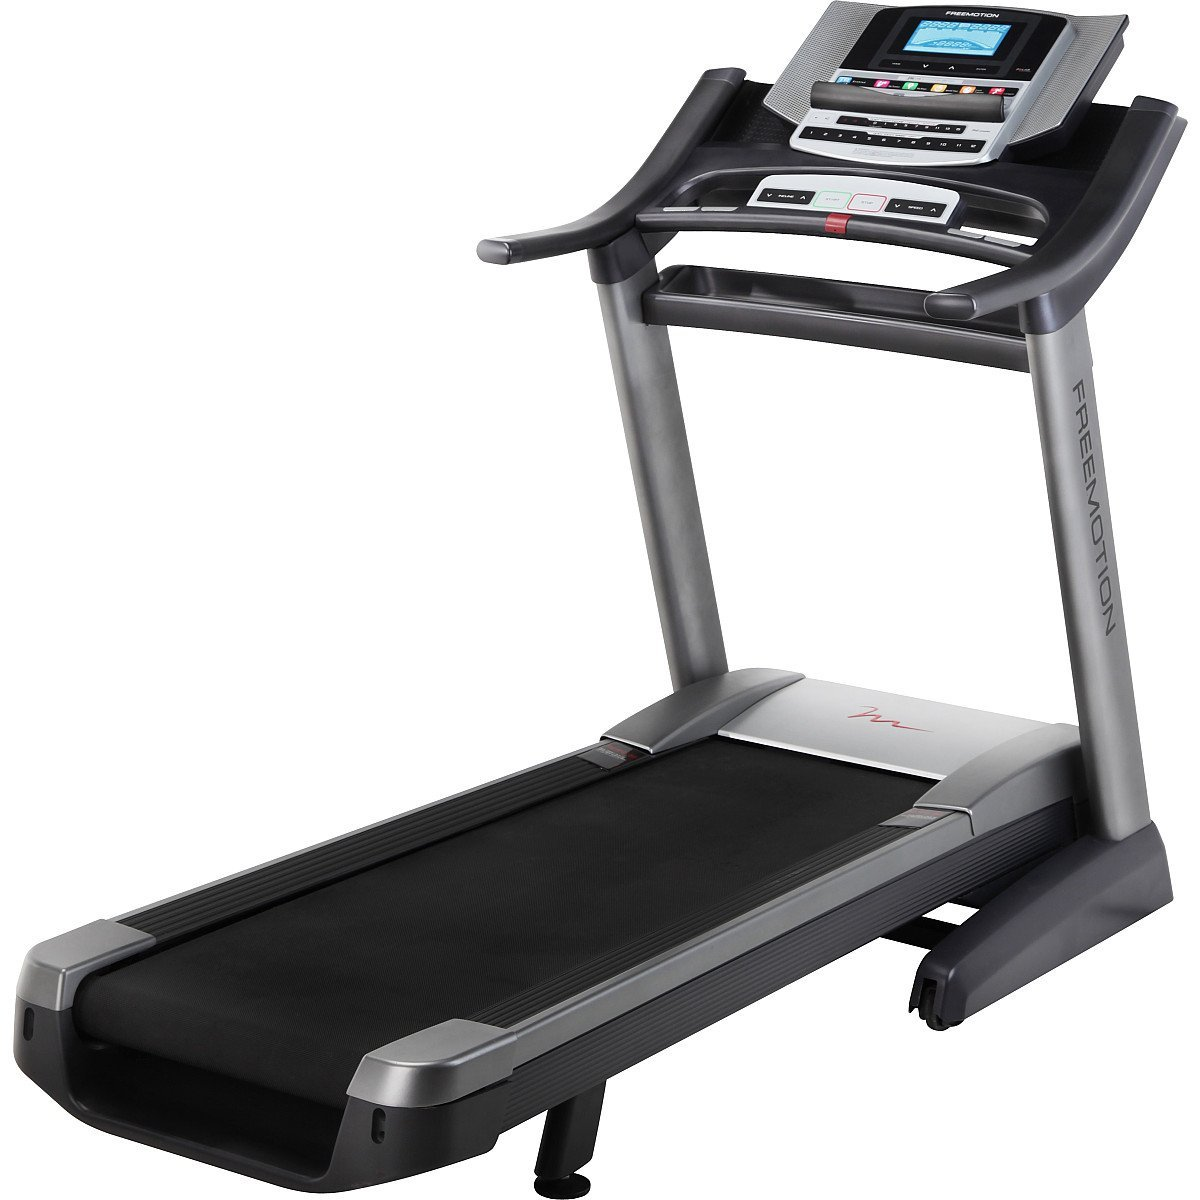 Want A Freemotion Treadmill We Compare Freemotion 750